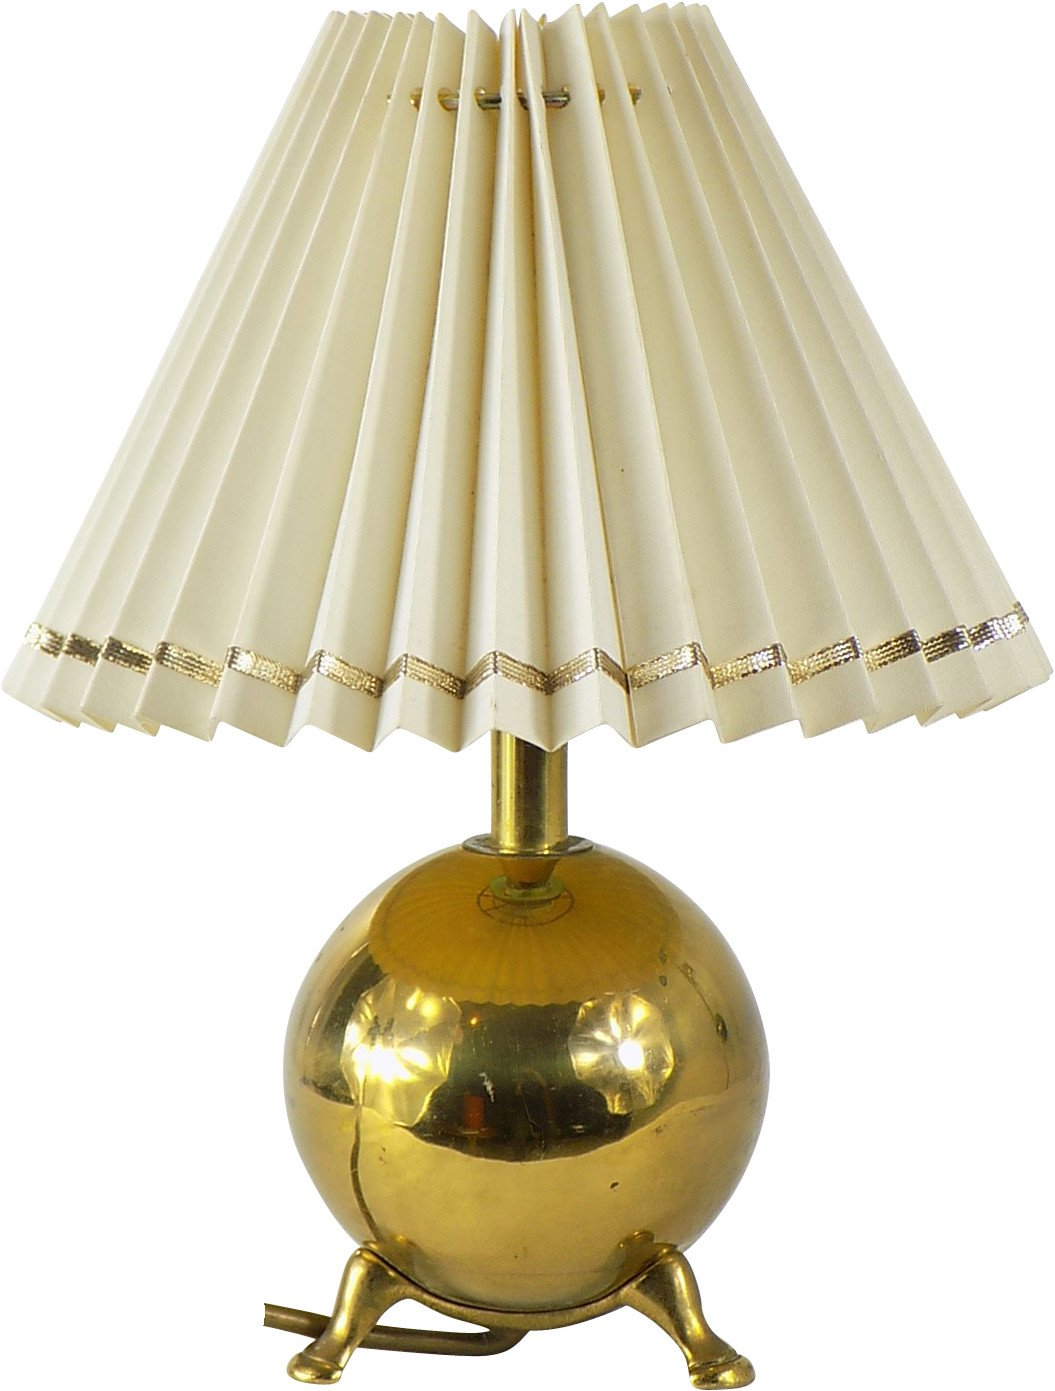 Lamp, Germany, 1950s